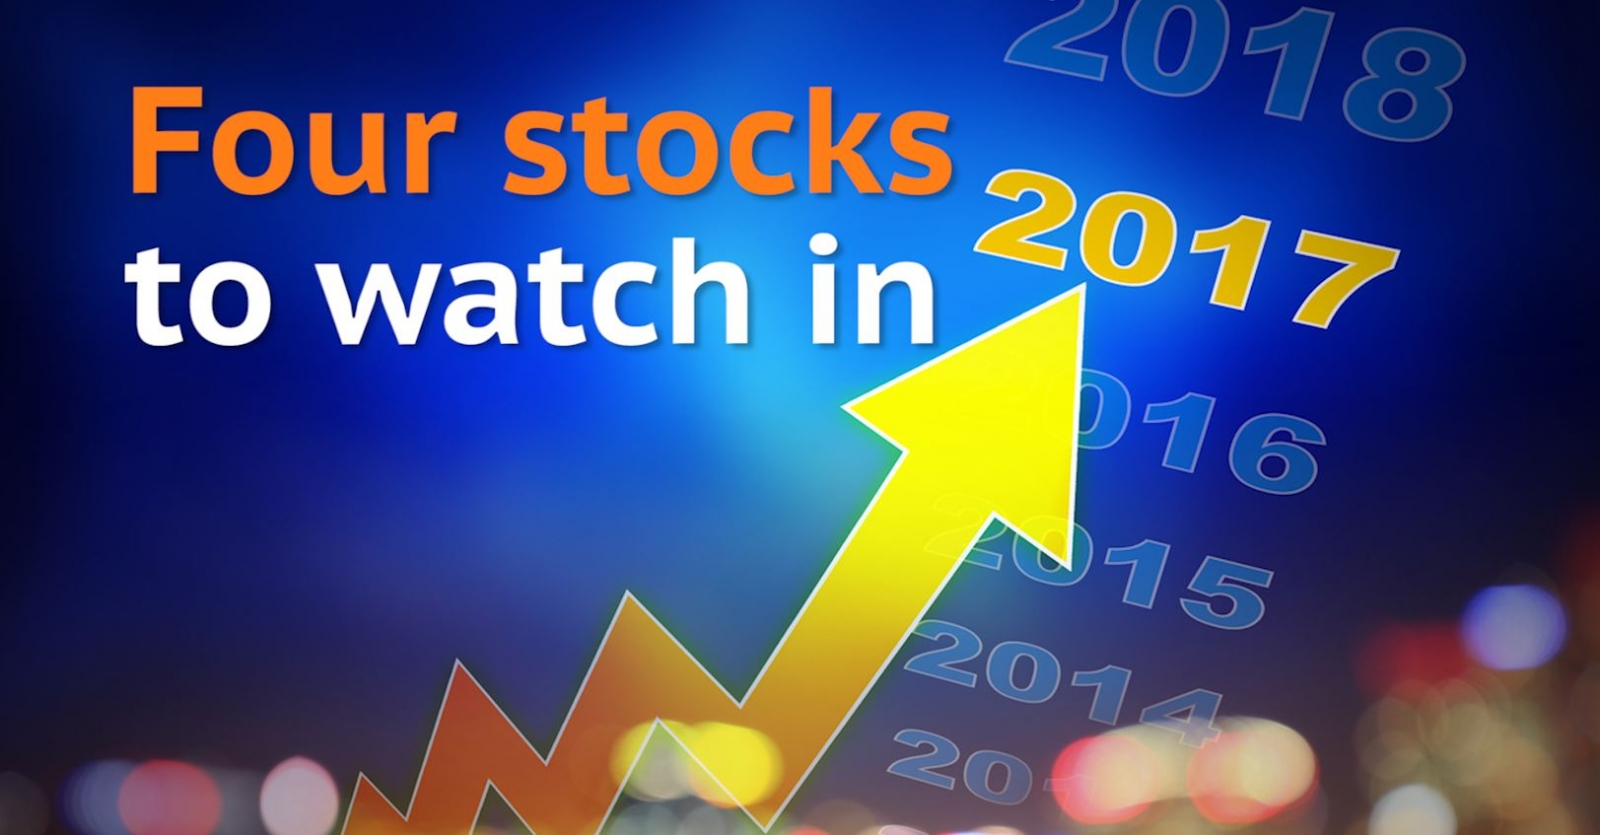 Stocks to watch for Valuable Investment in Singapore Share Market